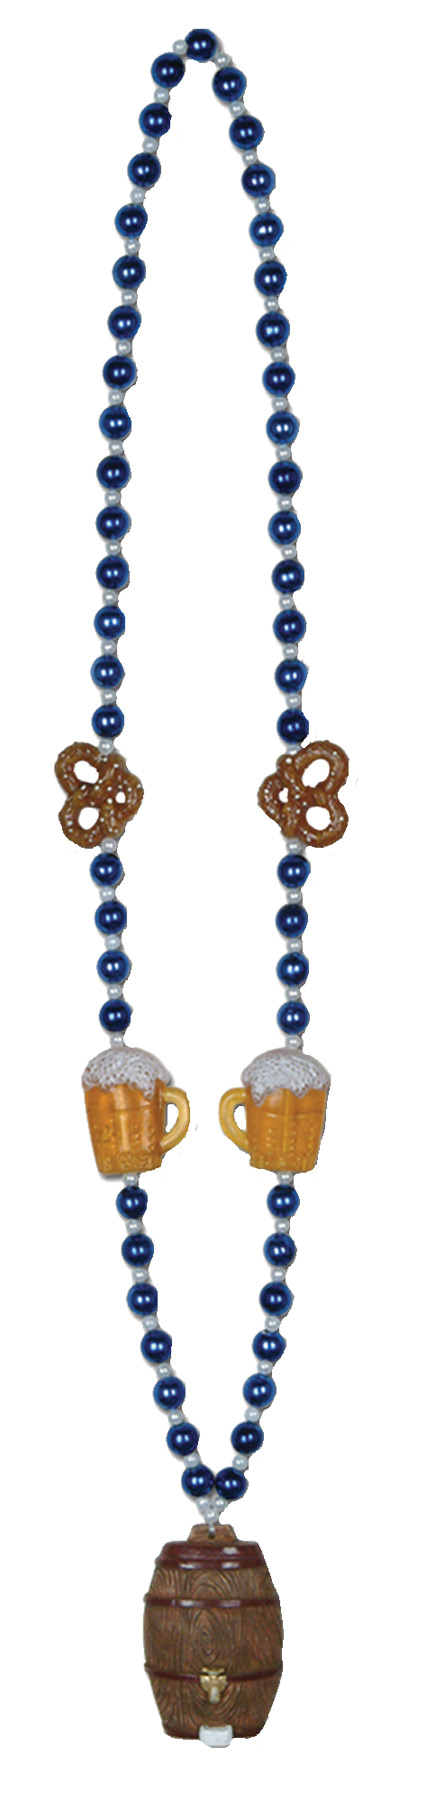 Featured Image for Oktoberfest Beads Keg Medallion